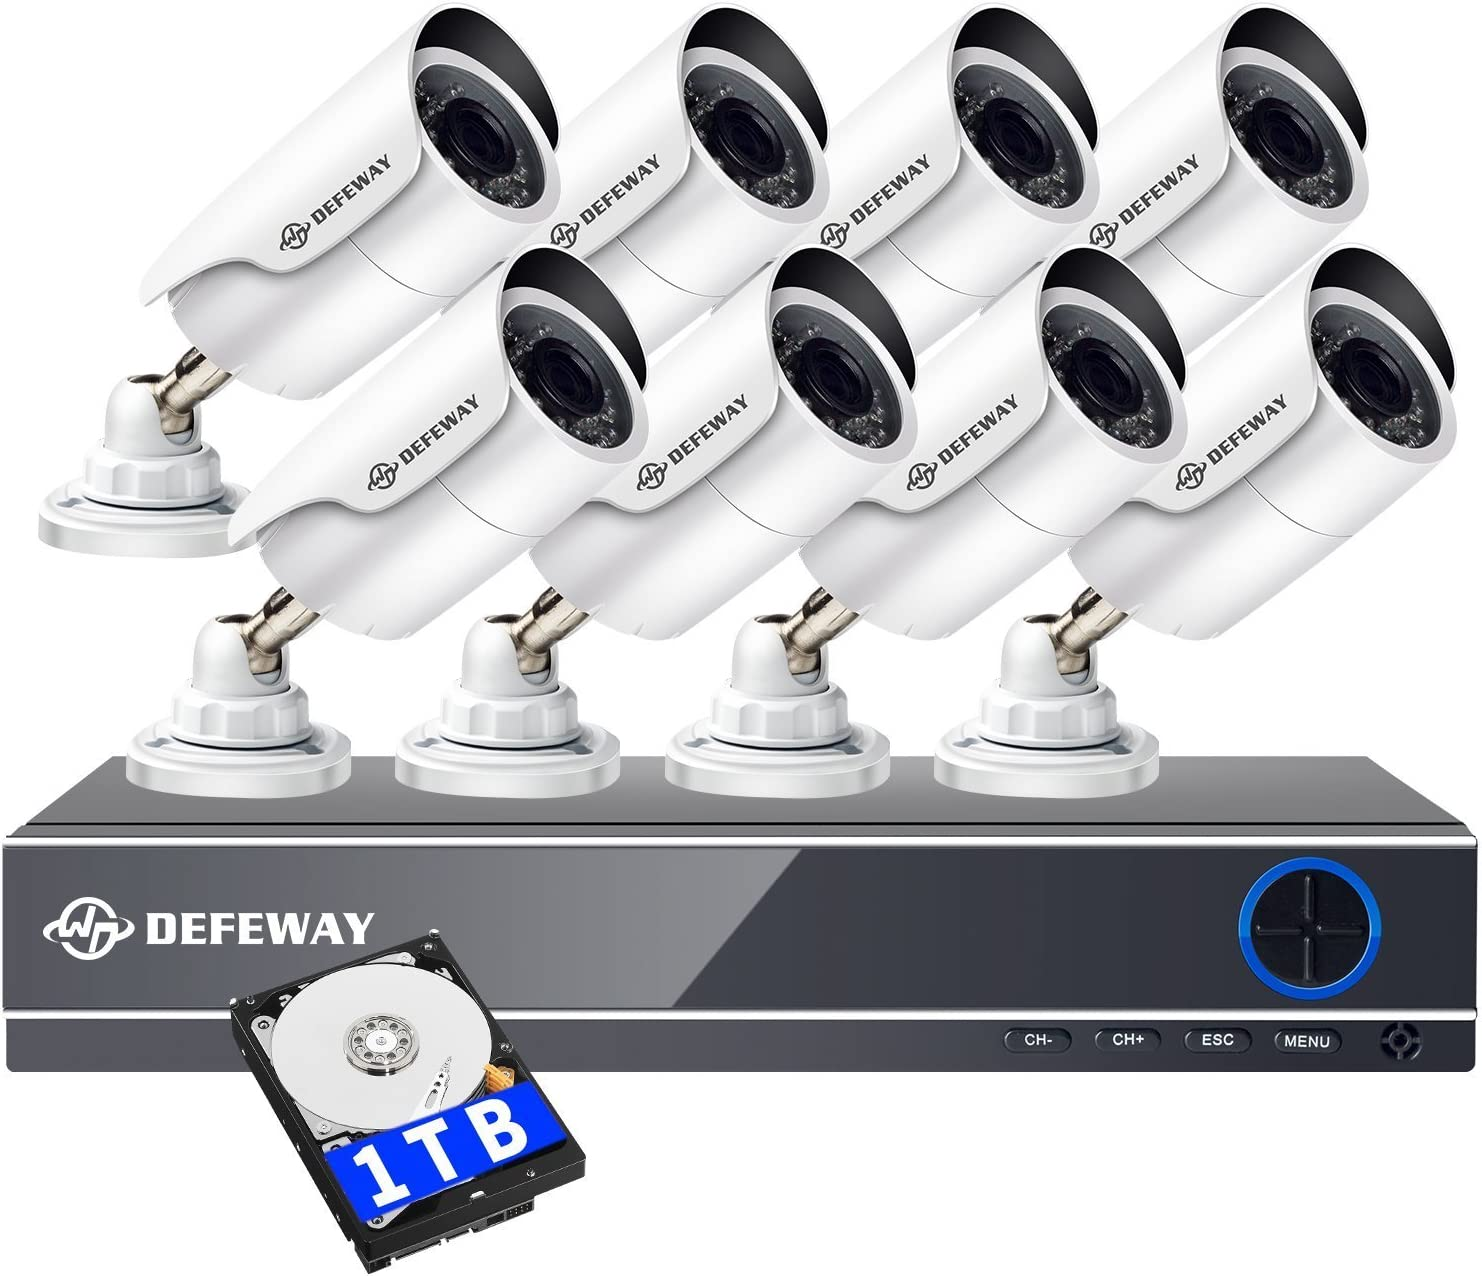 DEFEWAY 8 Channel Security Cameras System with 1080N AHD Audio DVR,8pcs Wired Waterproof Outdoor Indoor Bullet Surveillance Cameras,1TB Hard Drive Included